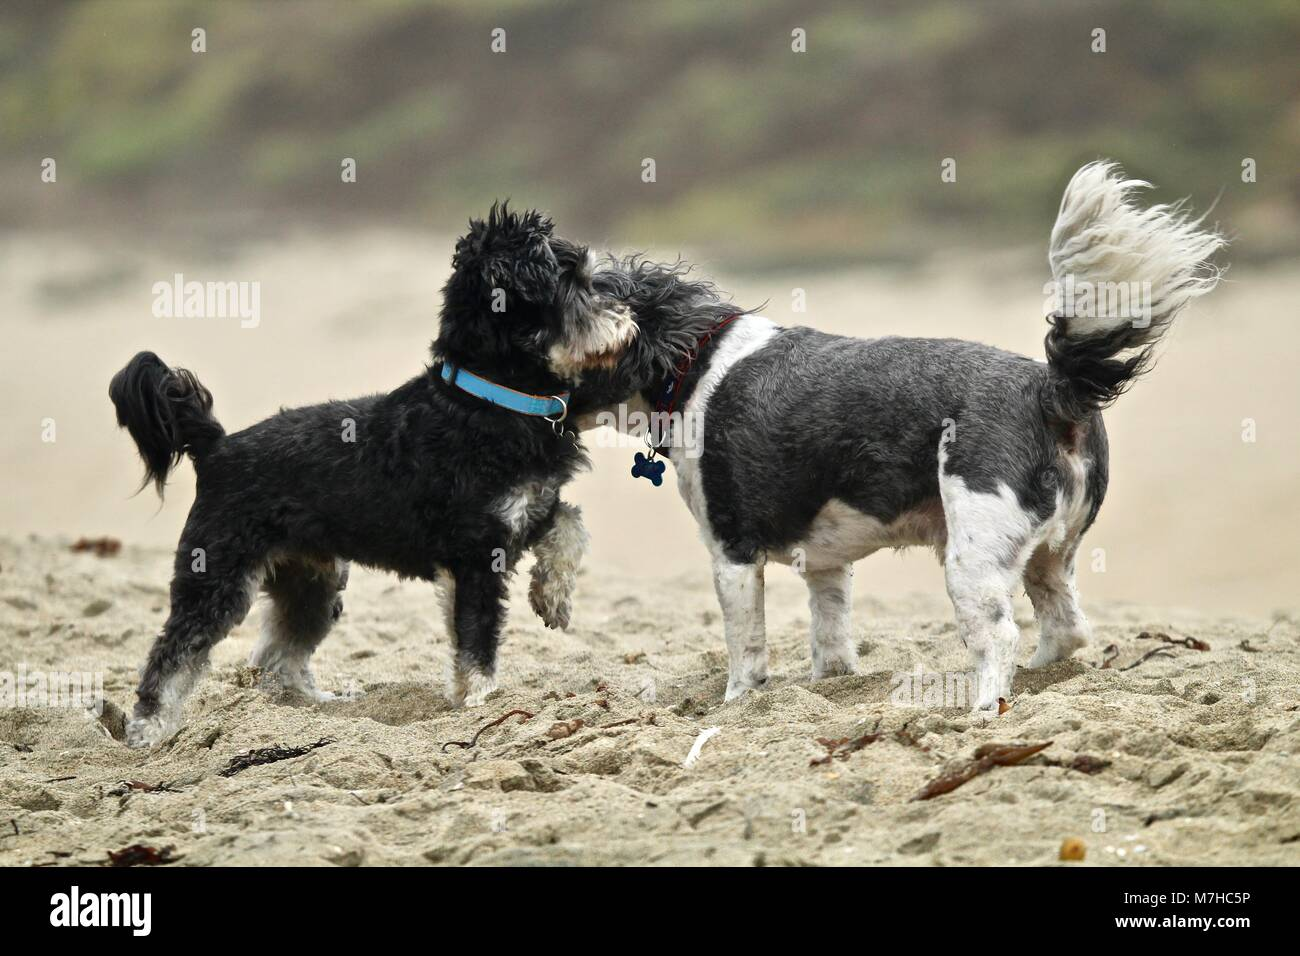 small dogs meeting at the beach - Stock Image